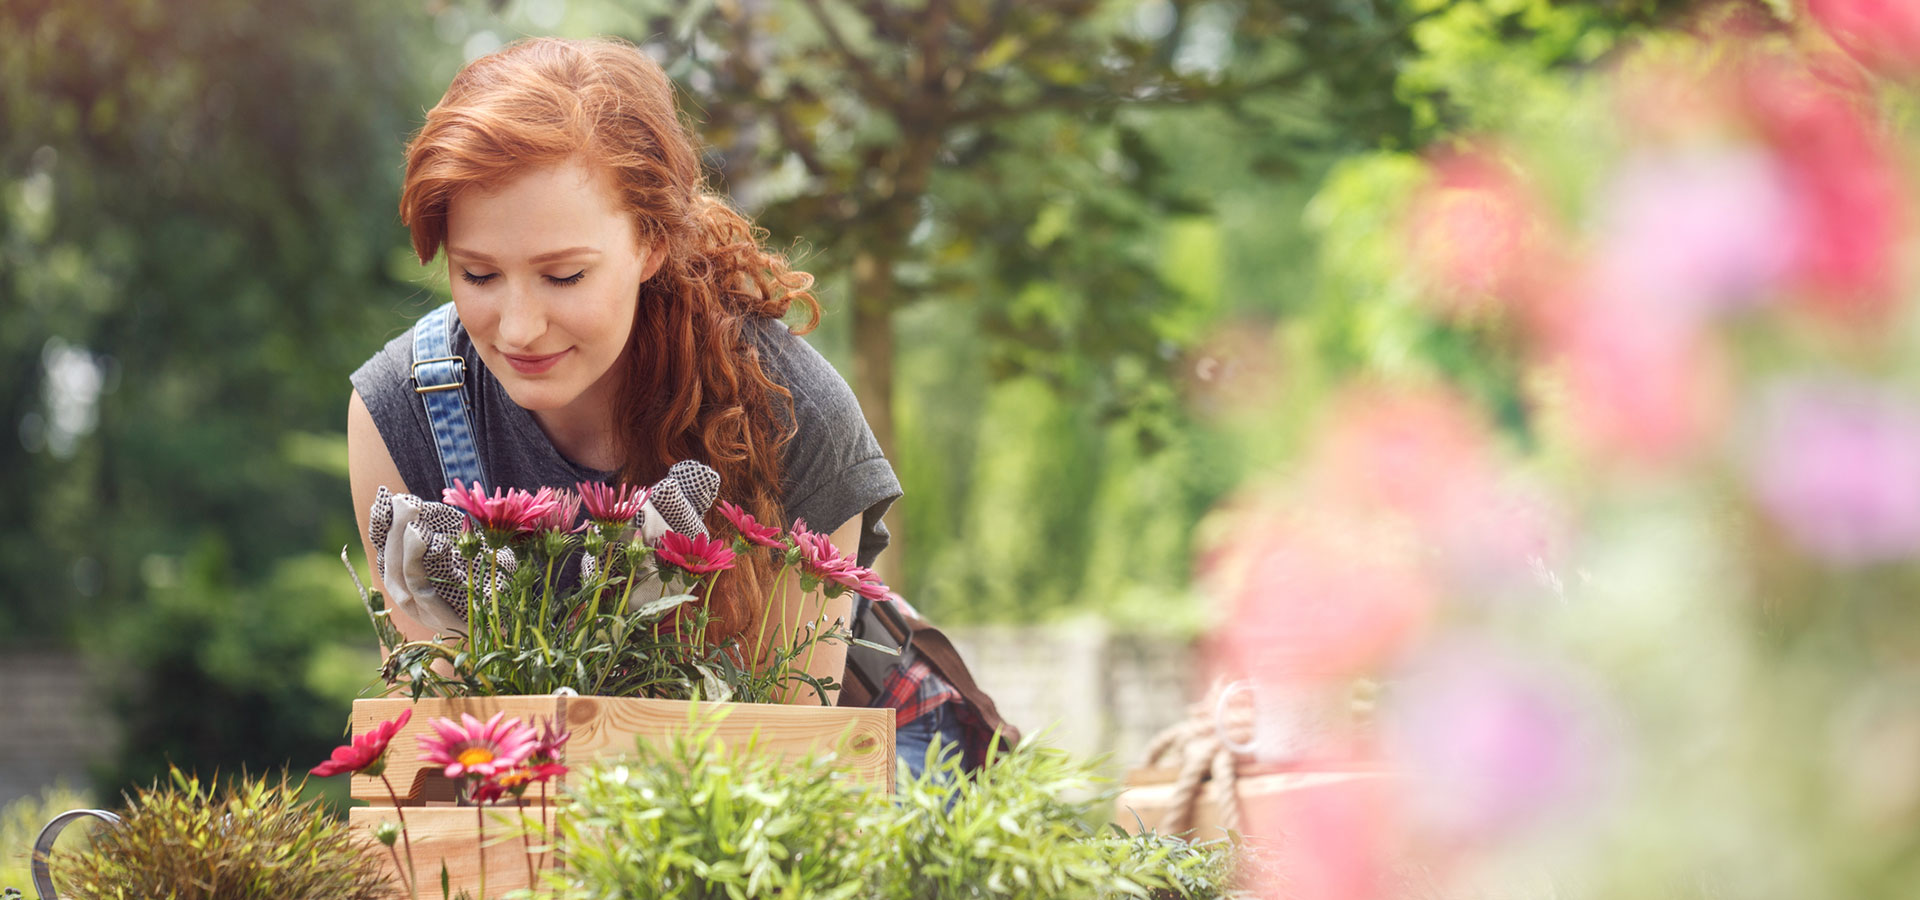 3 Ways Gardening Can Benefit Your Health